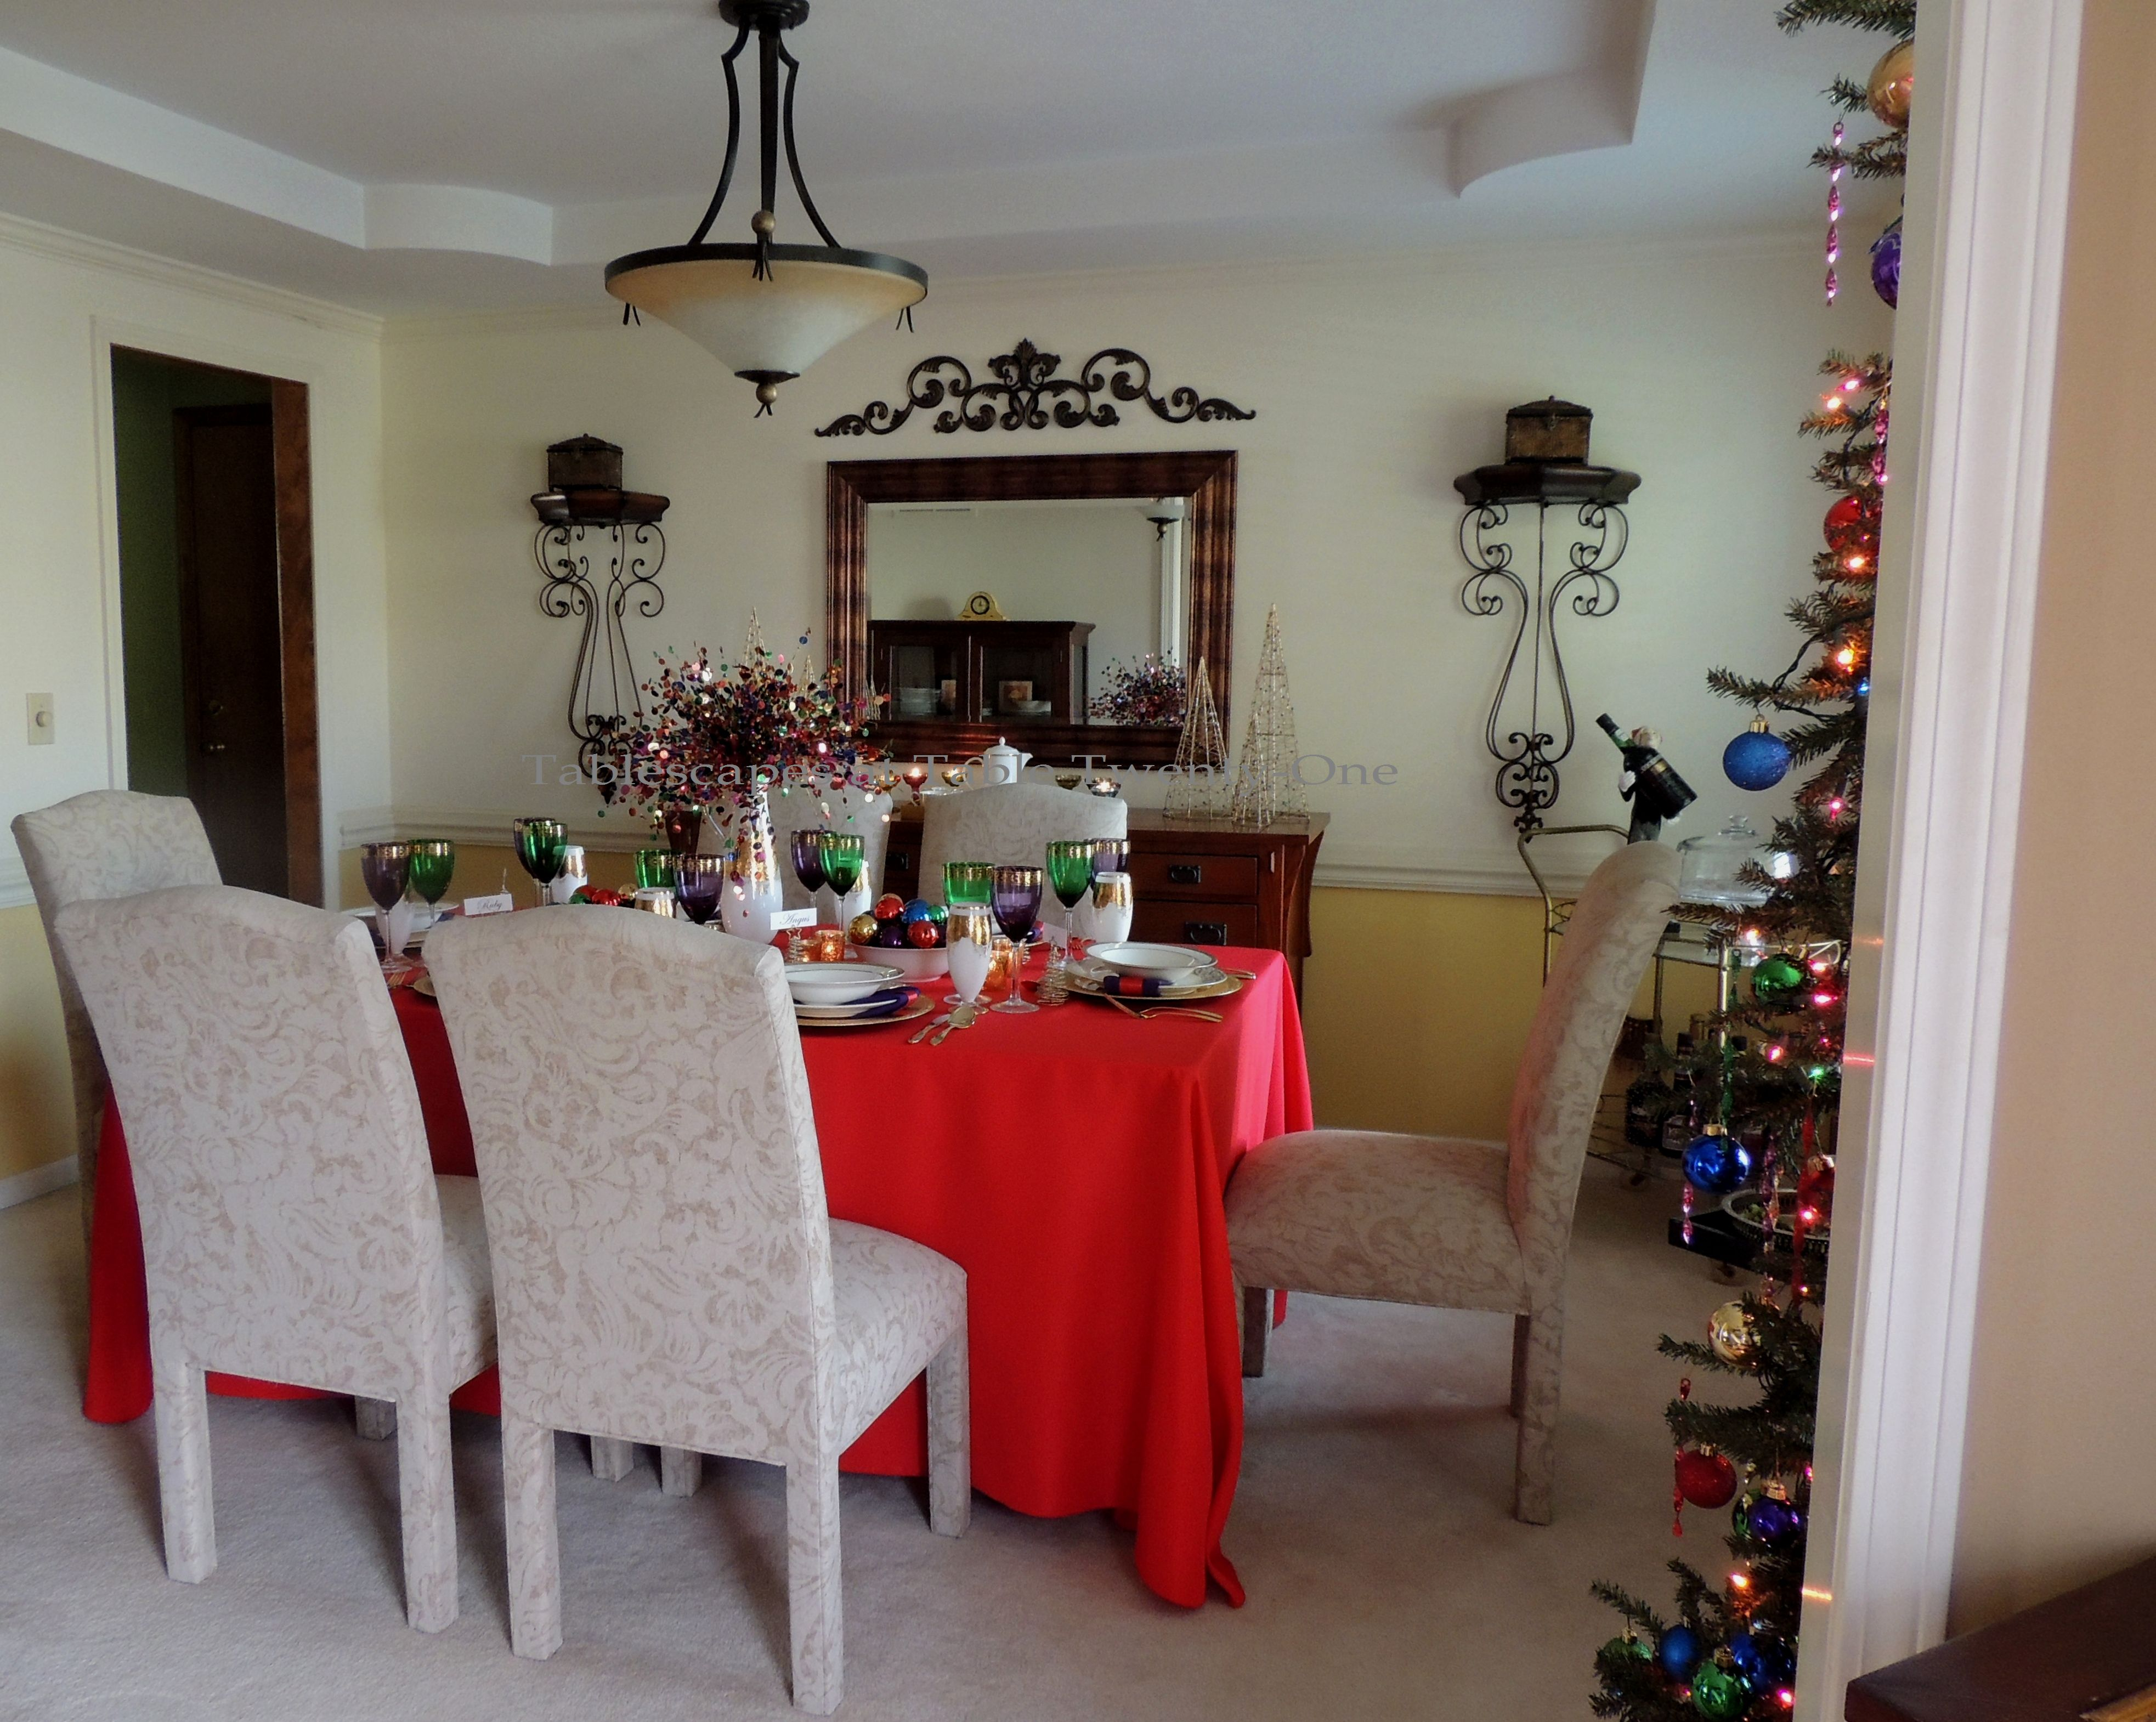 Tablescapes at Table Twenty-One, Merry & Bright Multi-Color Christmas: Full dining room